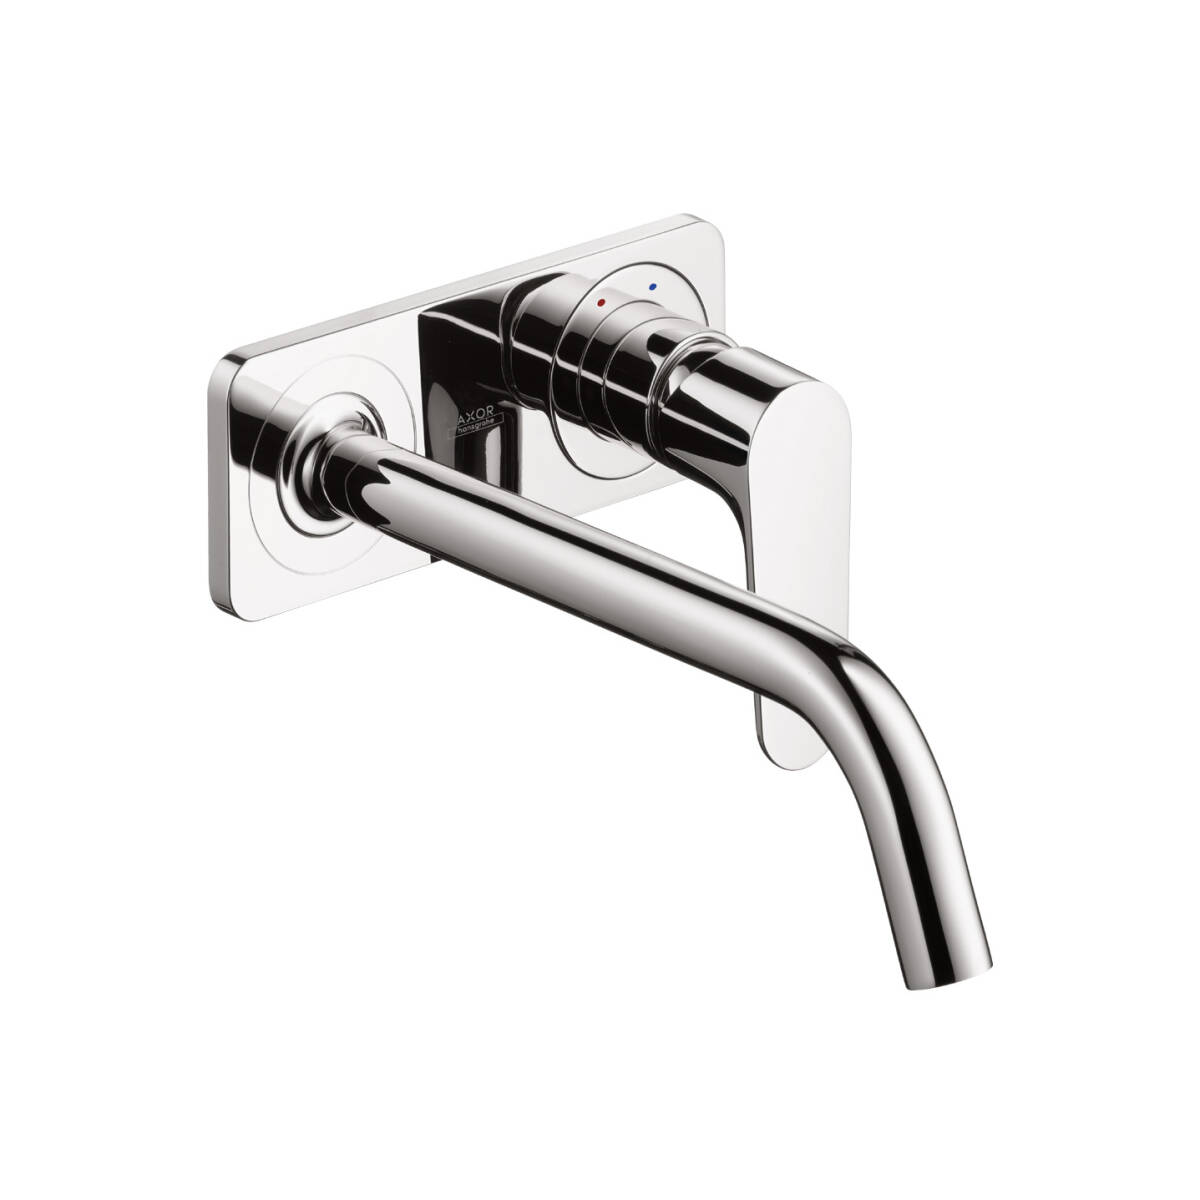 Single lever basin mixer for concealed installation with spout 227 mm and plate wall-mounted, Chrome, 34115000